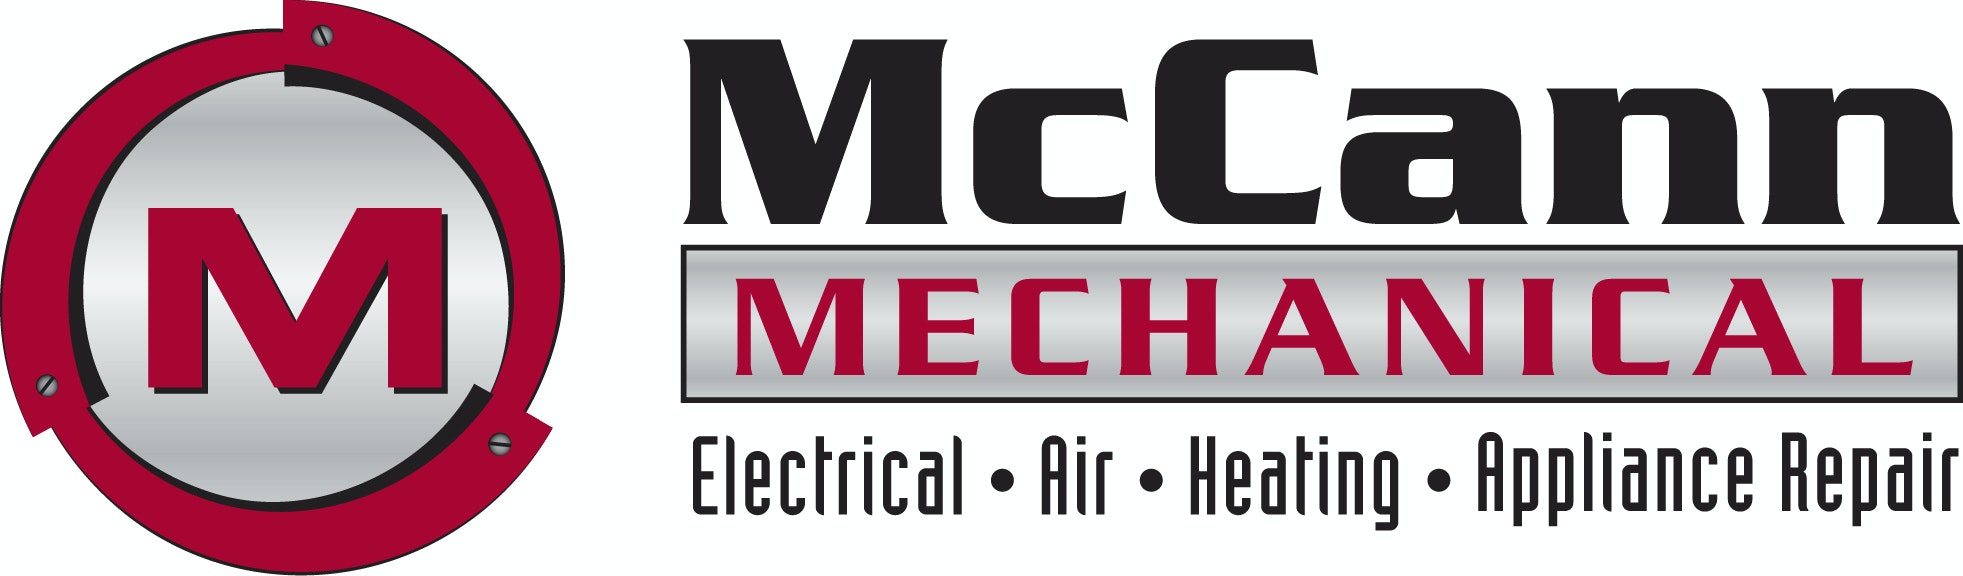 McCann Mechanical Inc Logo